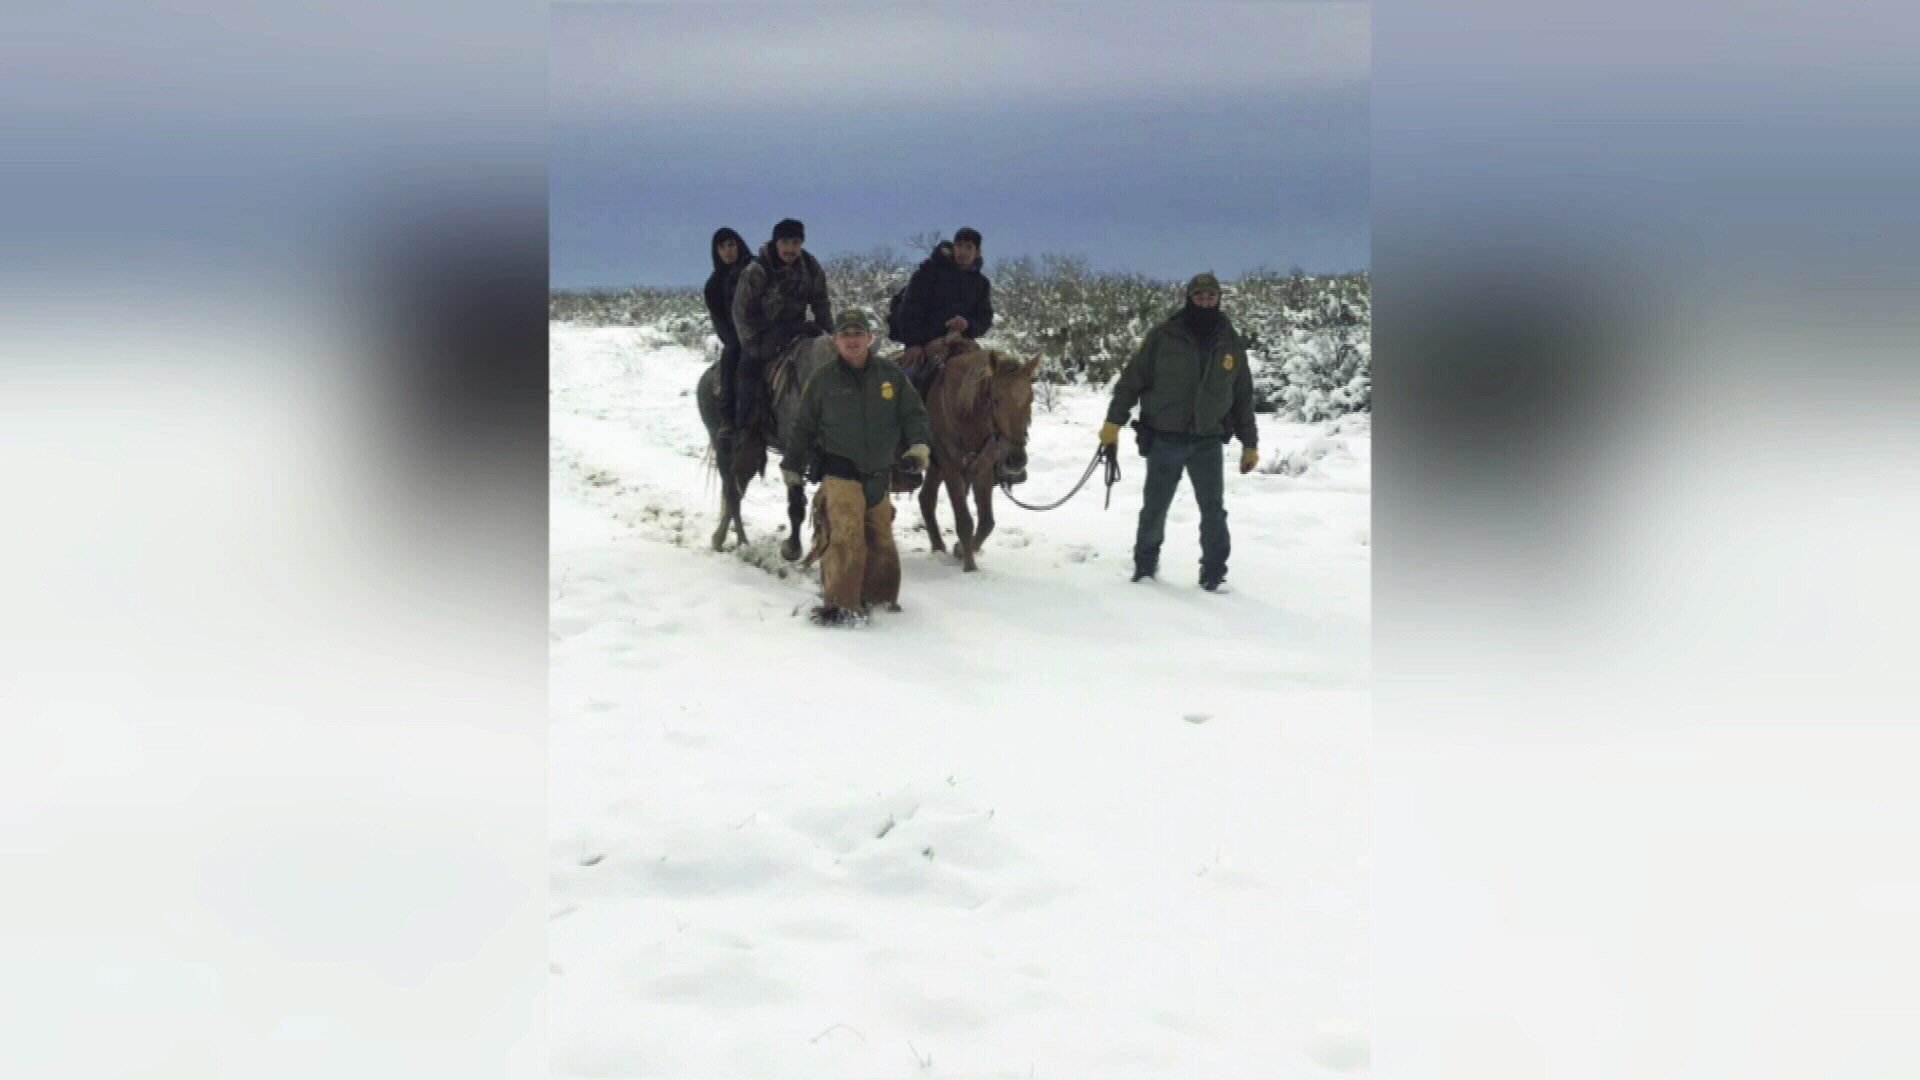 Border Patrol agents rescued dozens of illegal immigrants showing signs of hypothermia during the recent snow fall.